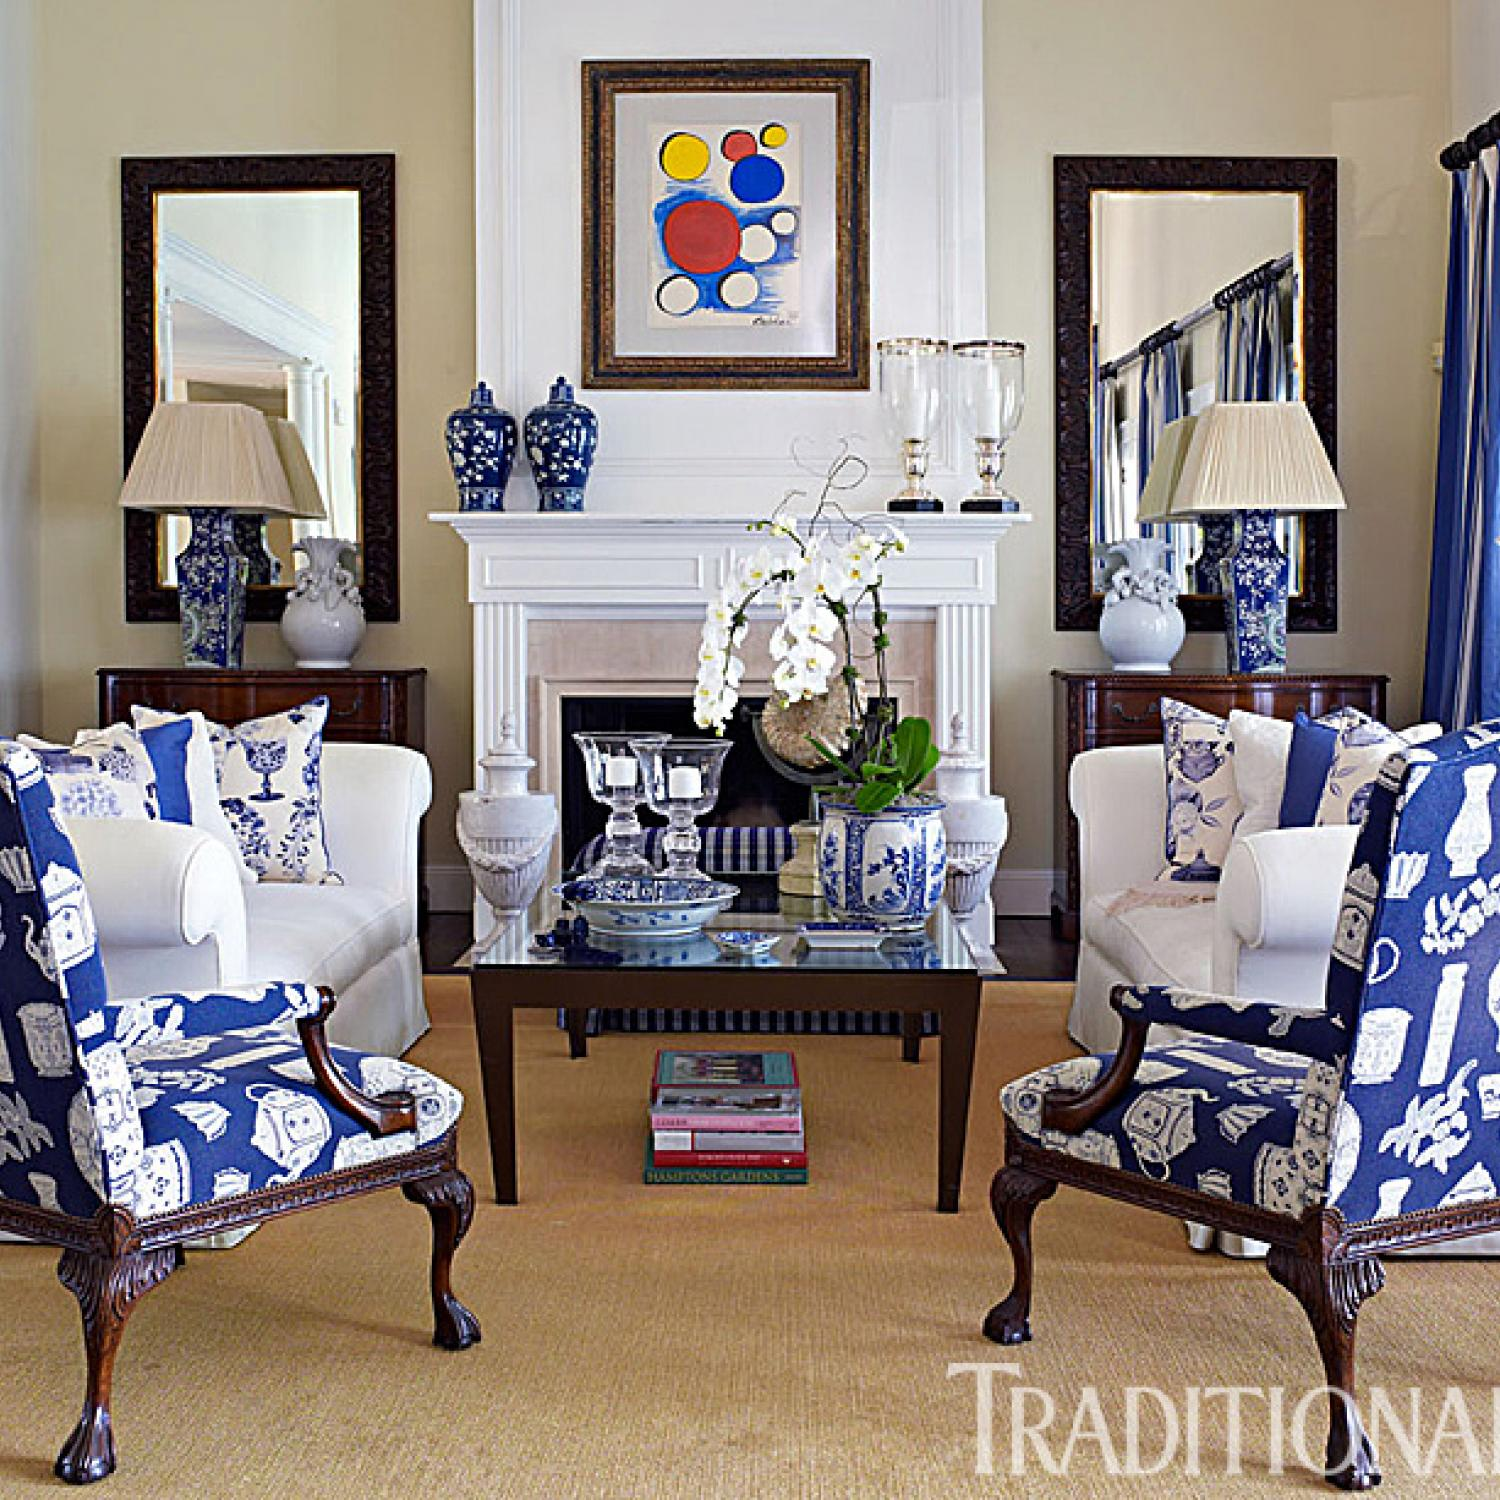 A Fashion Designer's Home in the Hamptons | Traditional Home